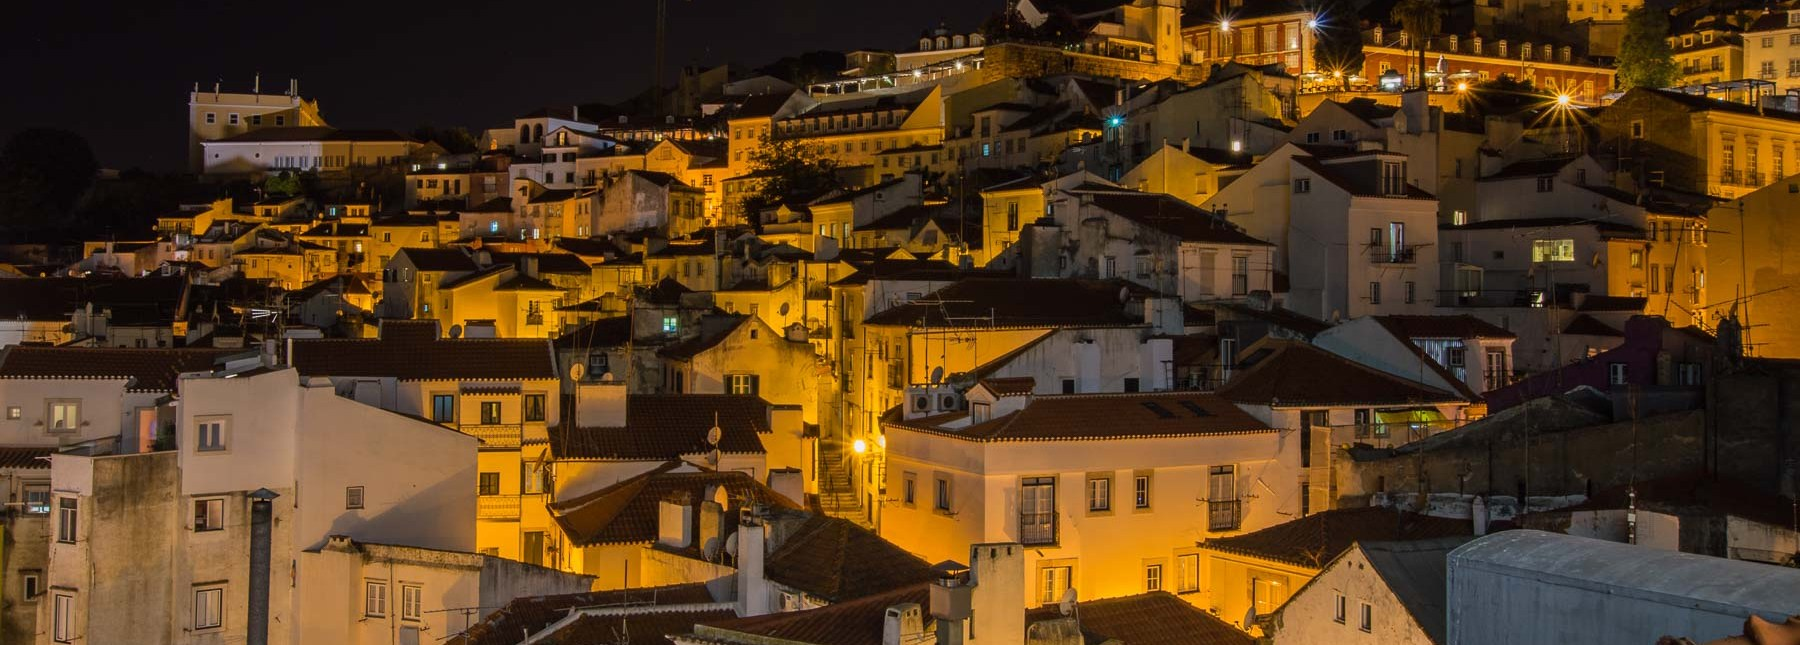 10 Reasons You Should Visit Lisbon Right Now